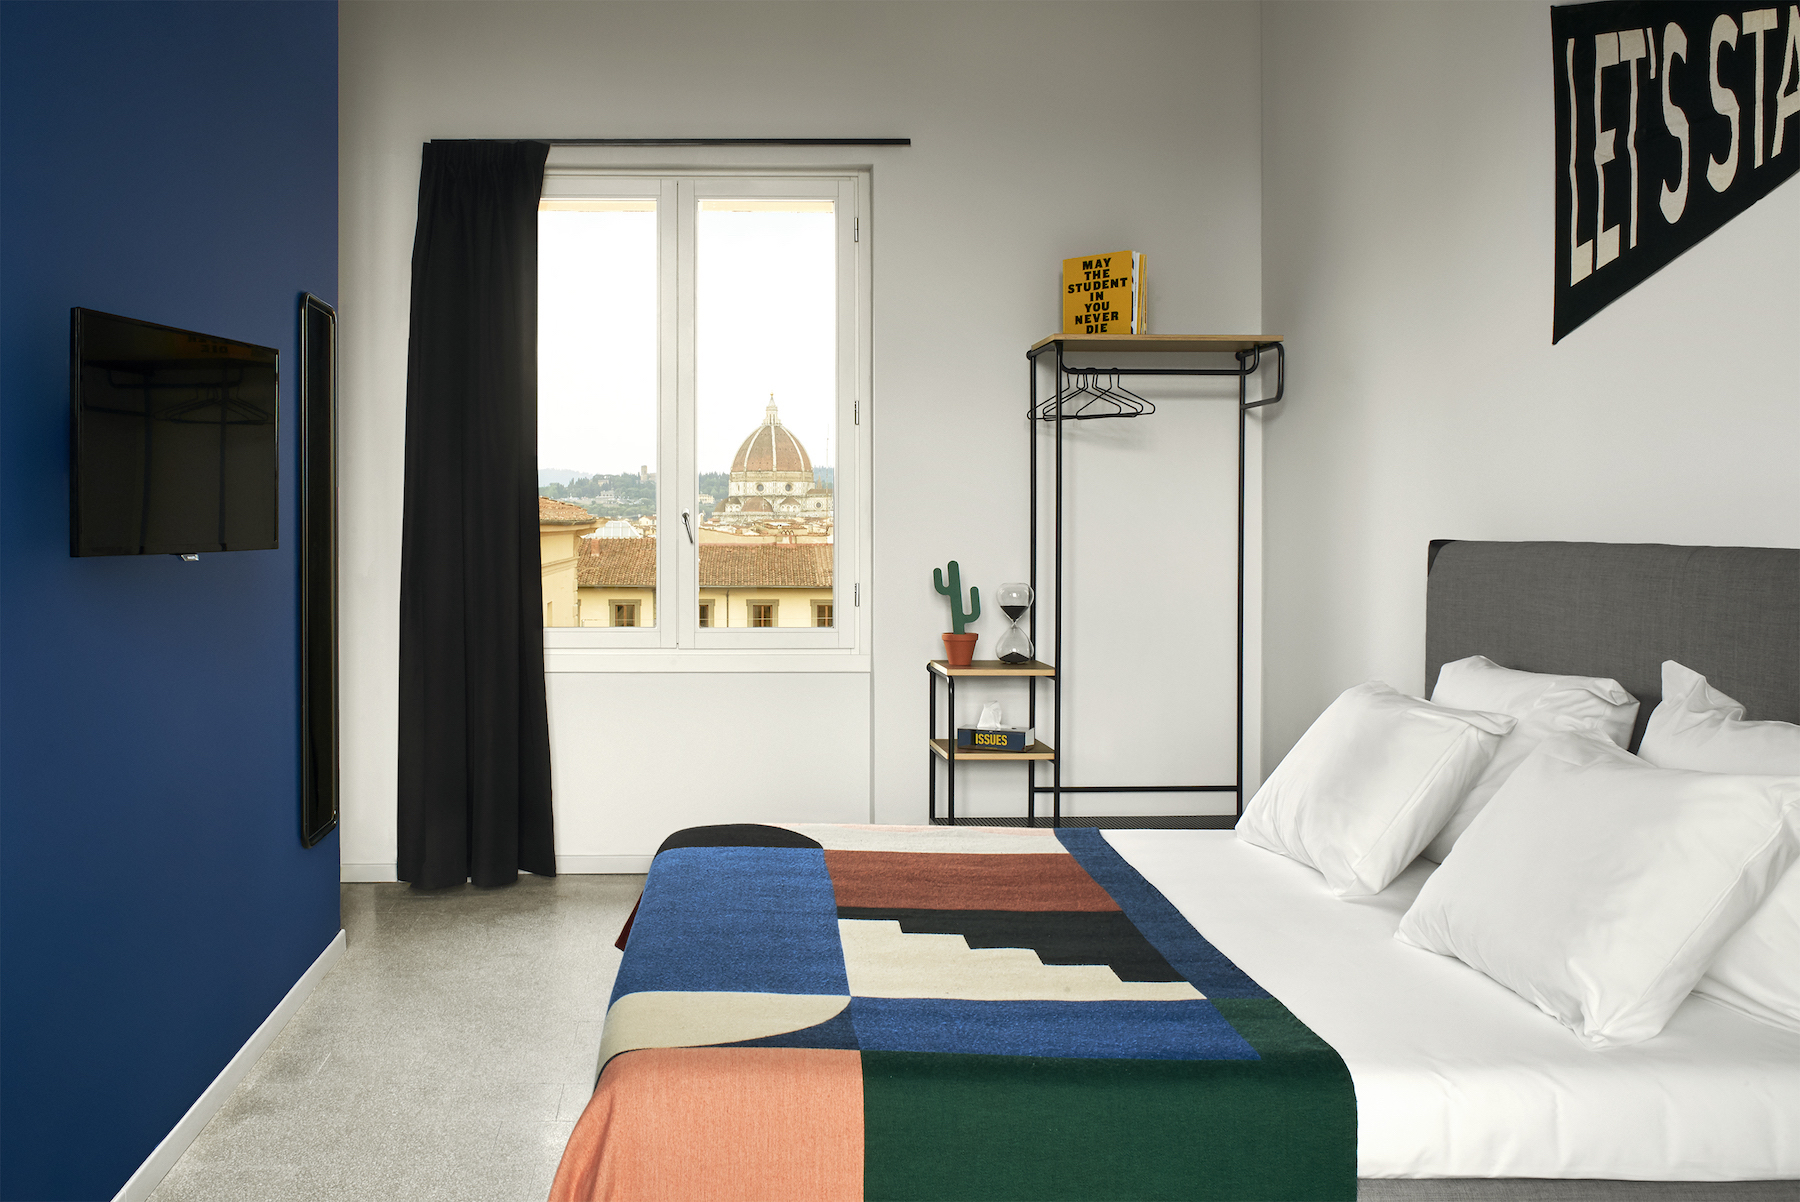 the-student-hotel-suite.jpg